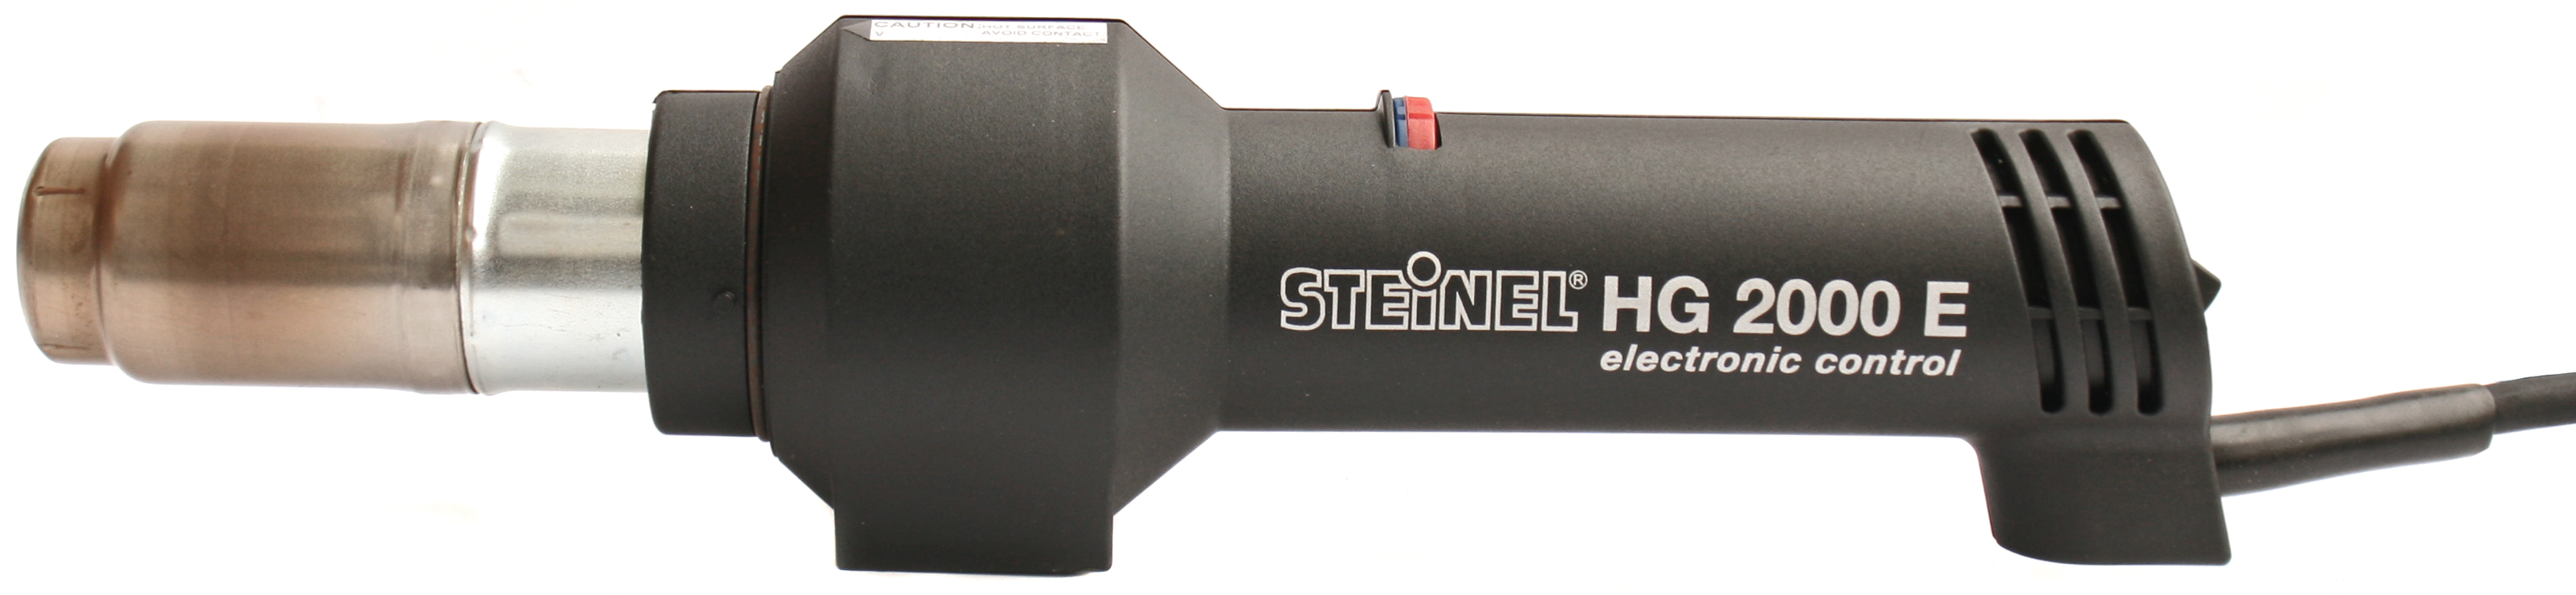 STEINEL HEAT GUN FOR TABLE TOP EDGEBANDER – Practical Products